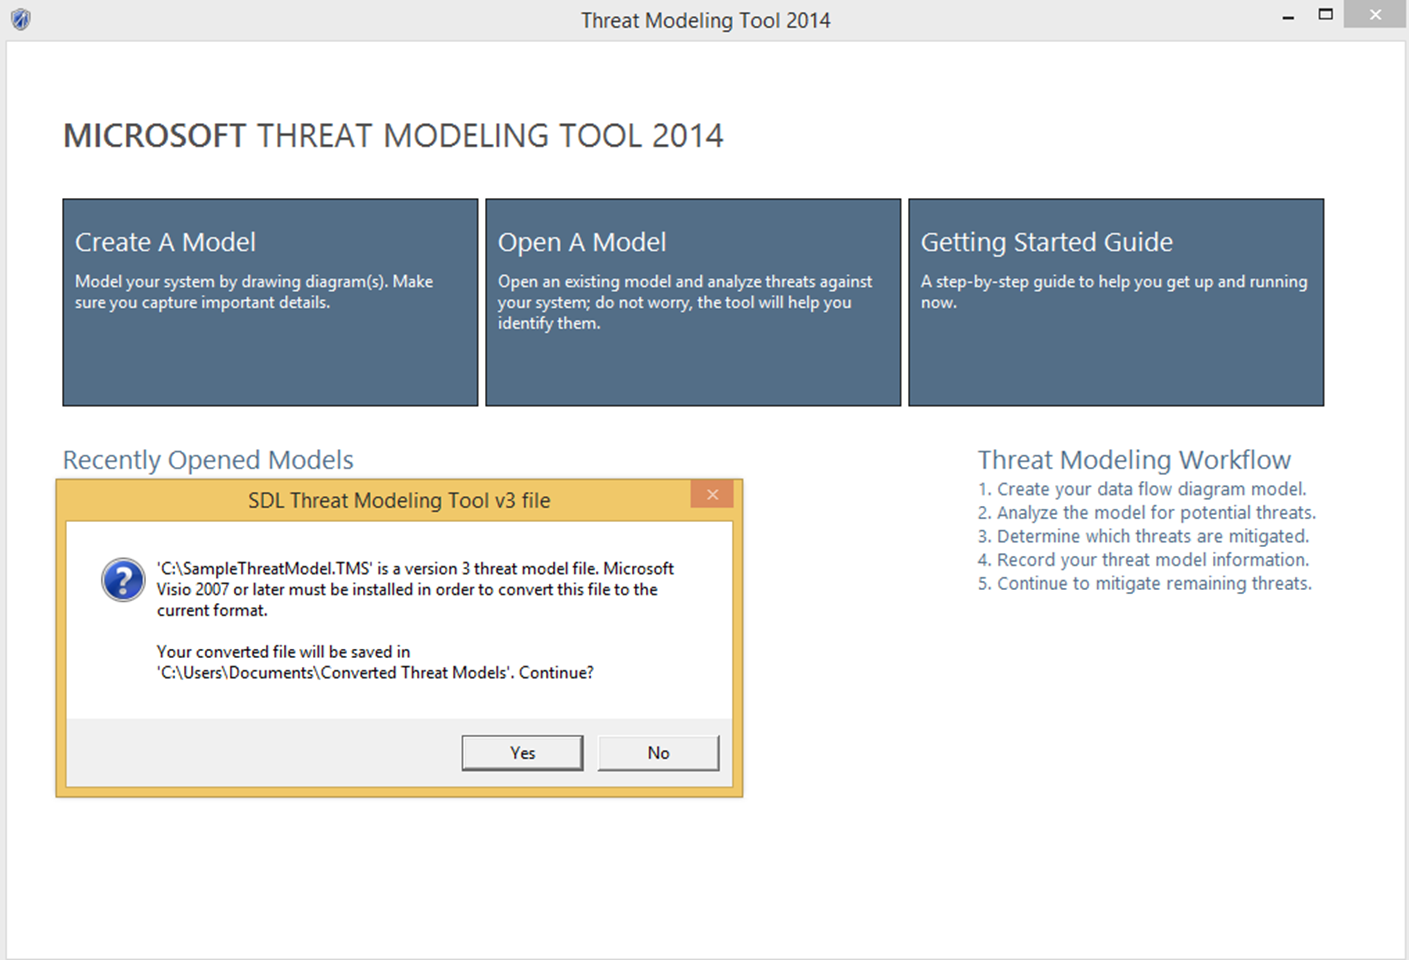 Introducing Microsoft Threat Modeling Tool 2014 - Microsoft Secure